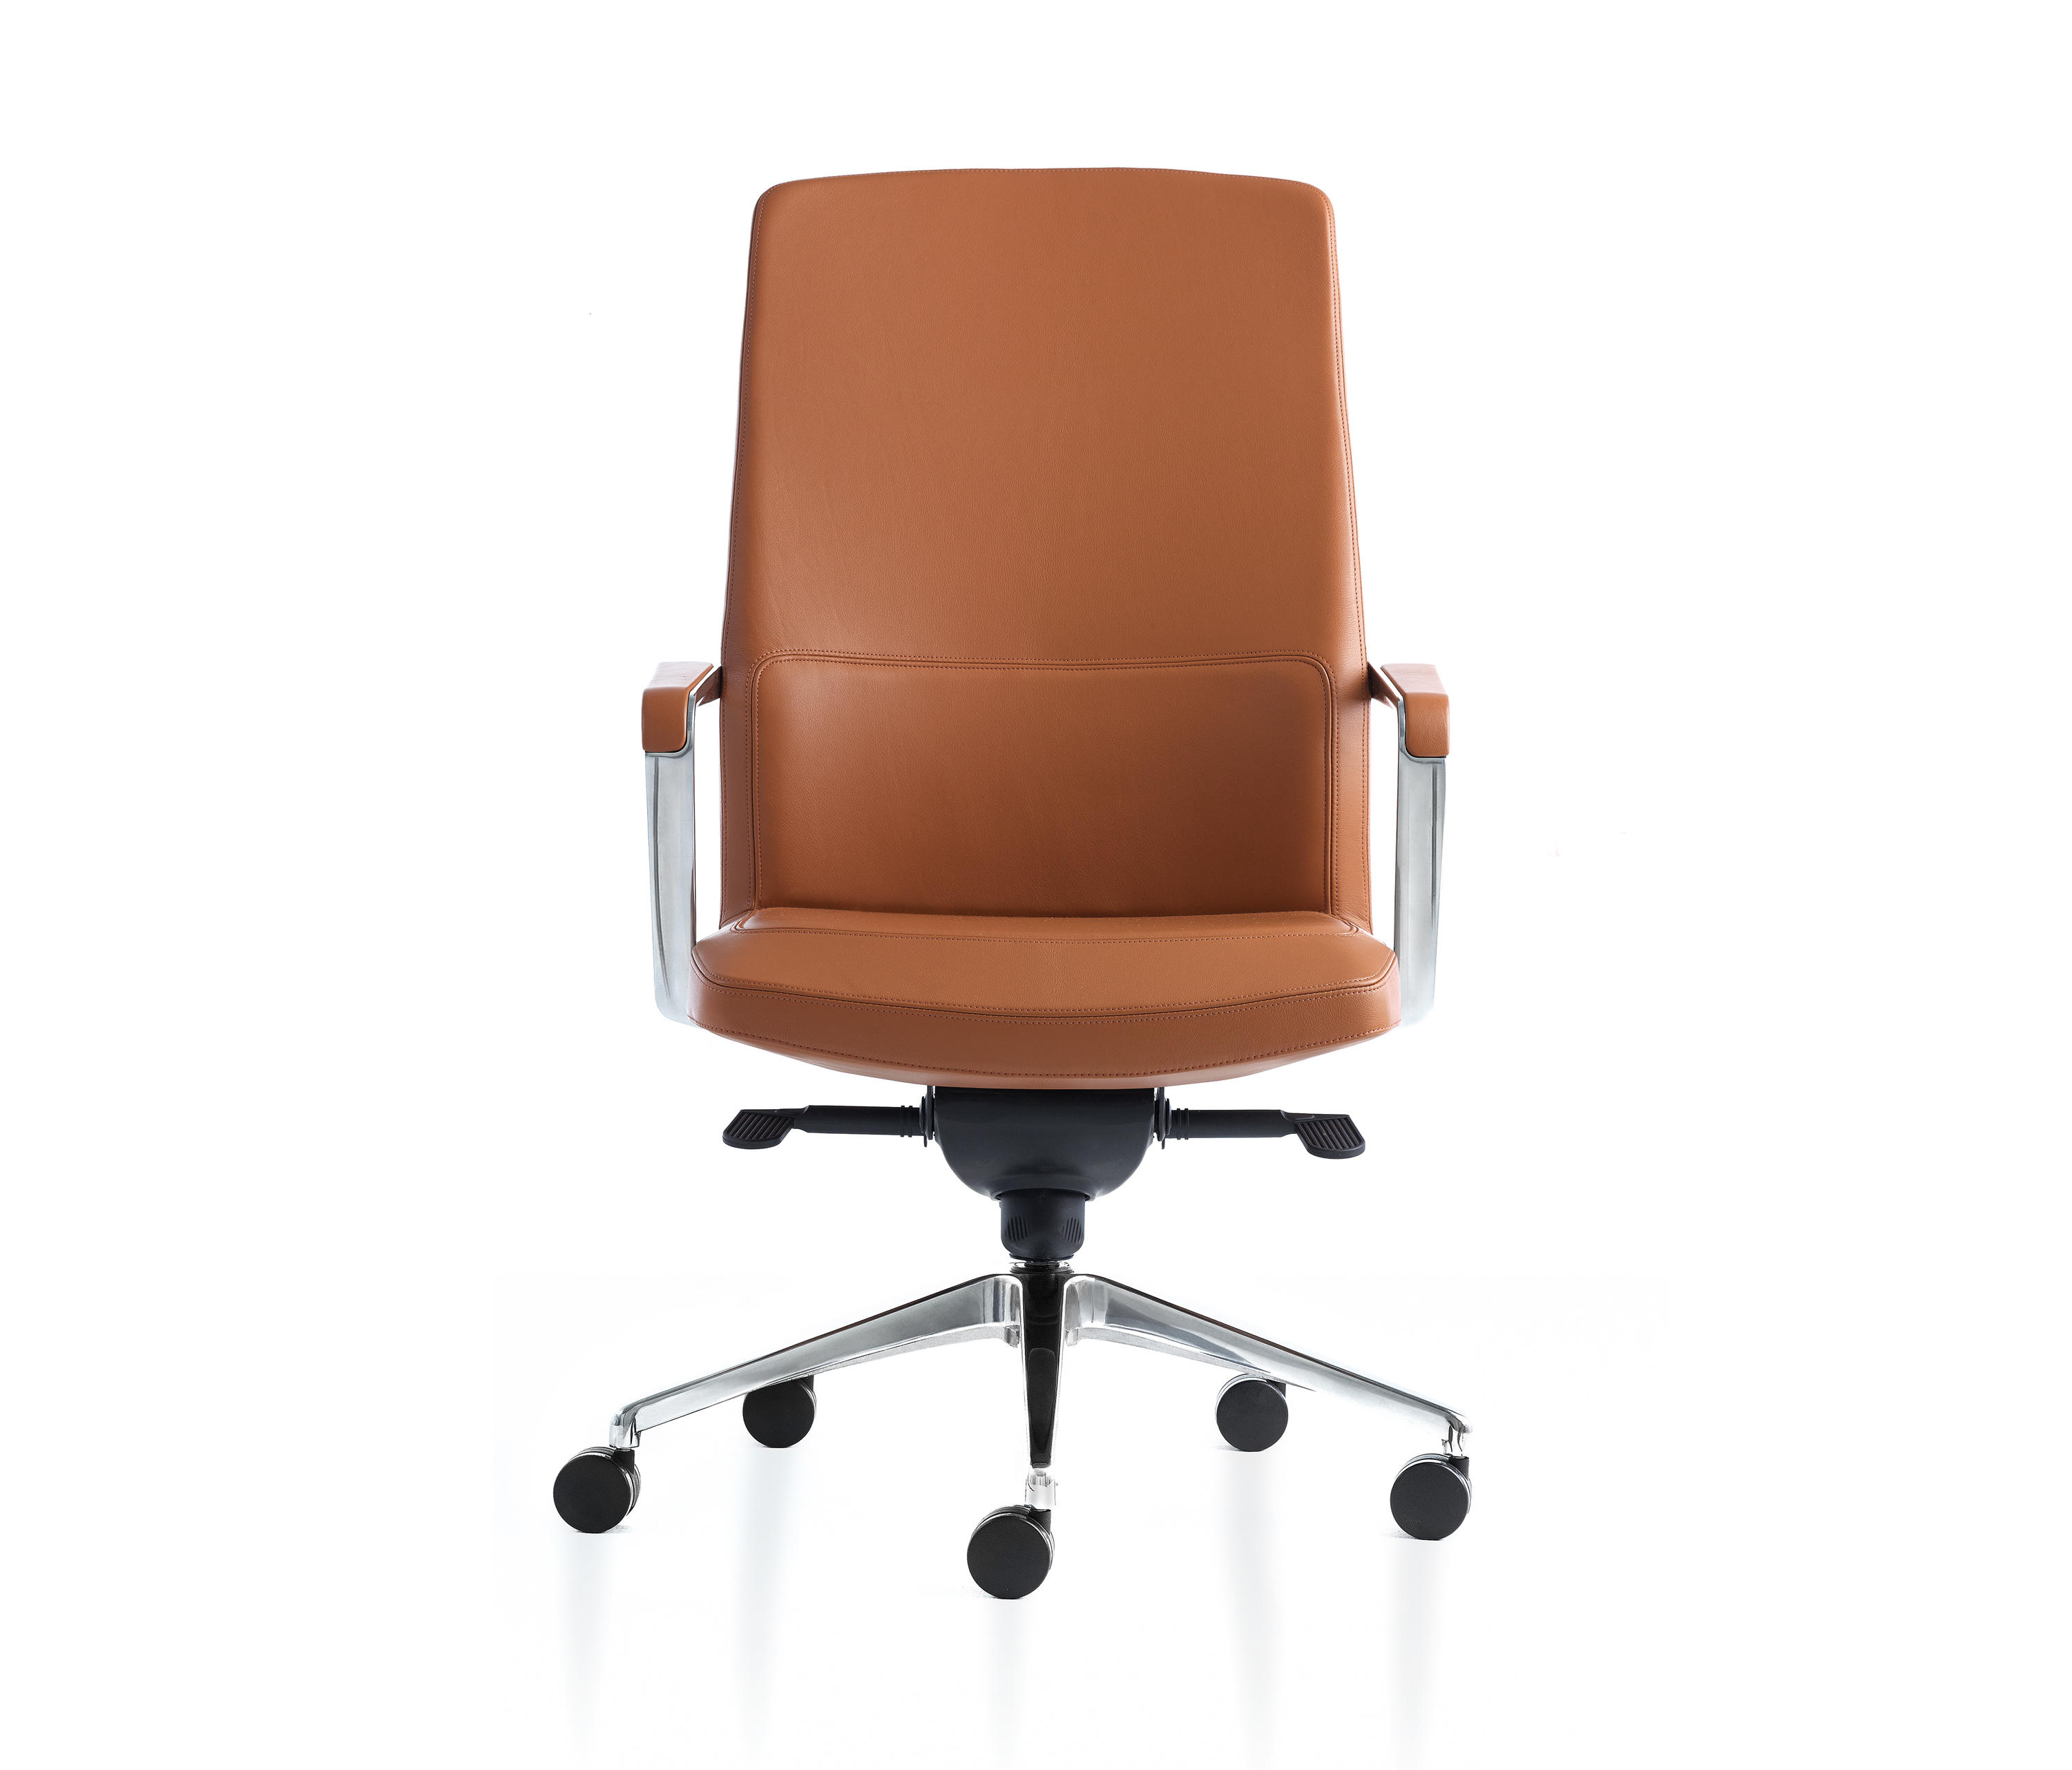 ROBUS HIGH BACK Executive chairs from Stylex